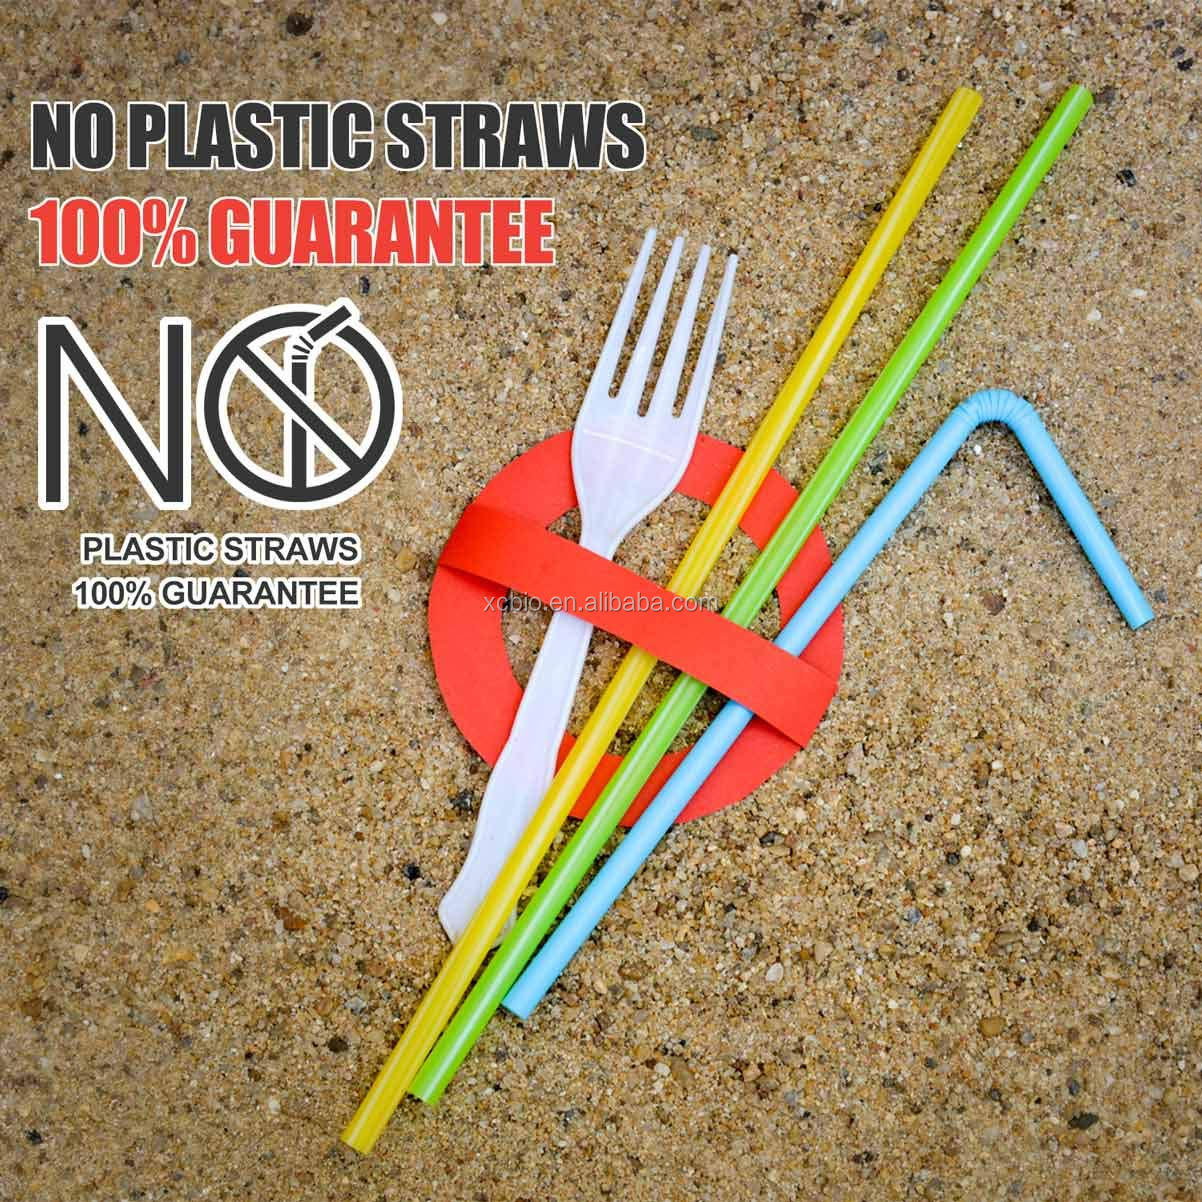 Plasticless Biodégradable Pailles Souples-Une Fantastique Alternative Écologique 100% À Base de plantes Compostable Pailles